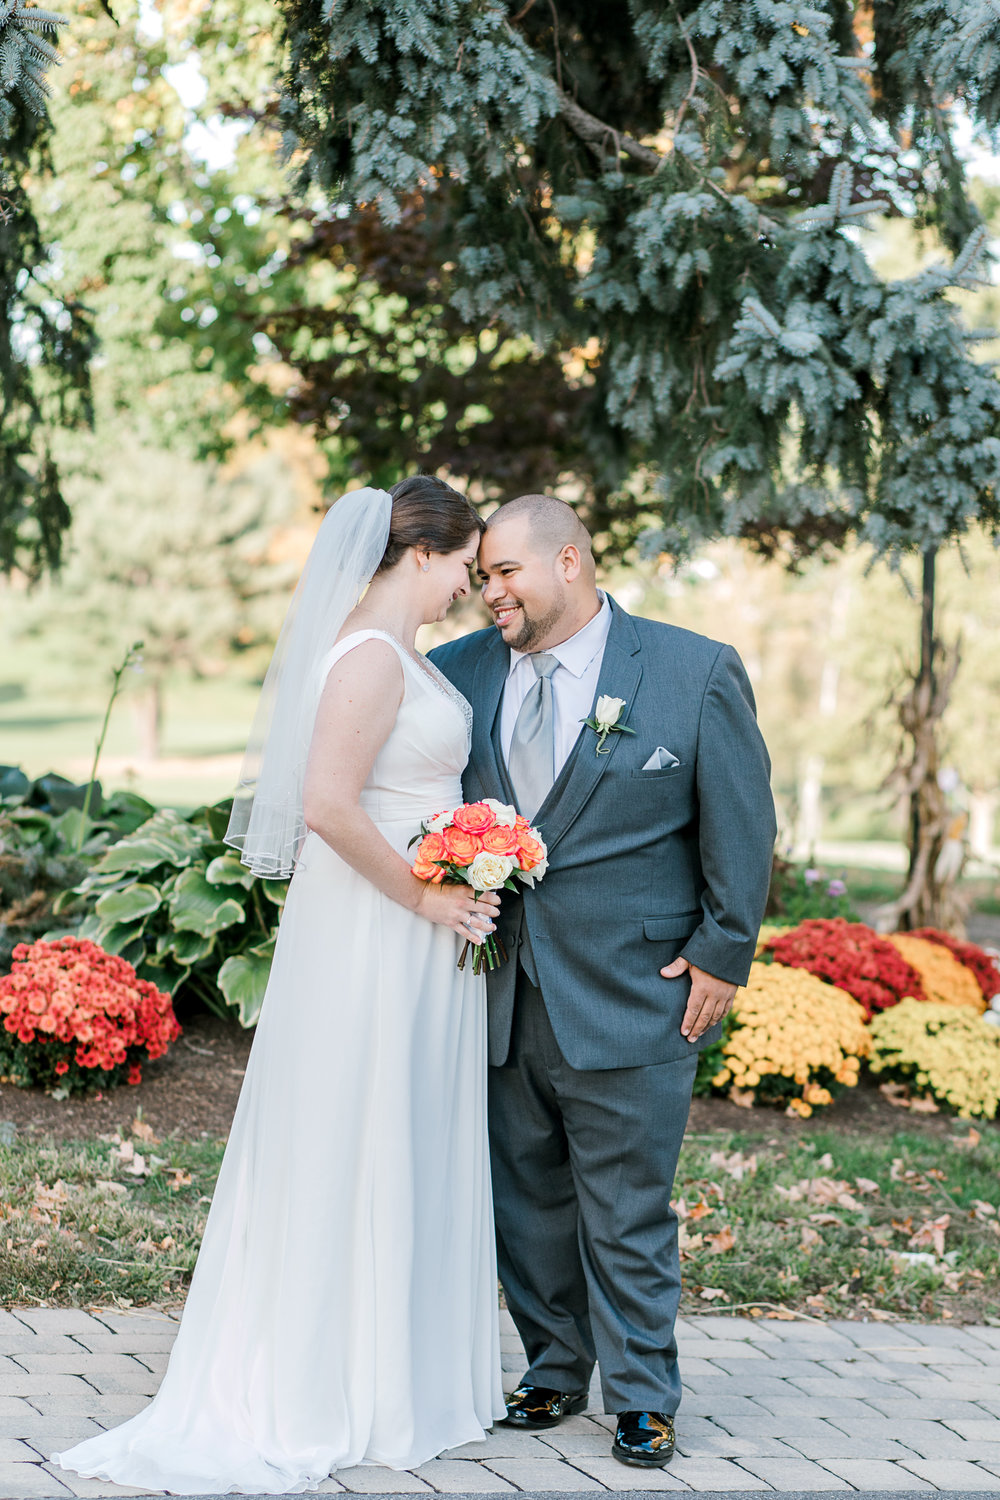 pleasant_valley_country_club_wedding_sutton_erica_pezente_photography (63).jpg